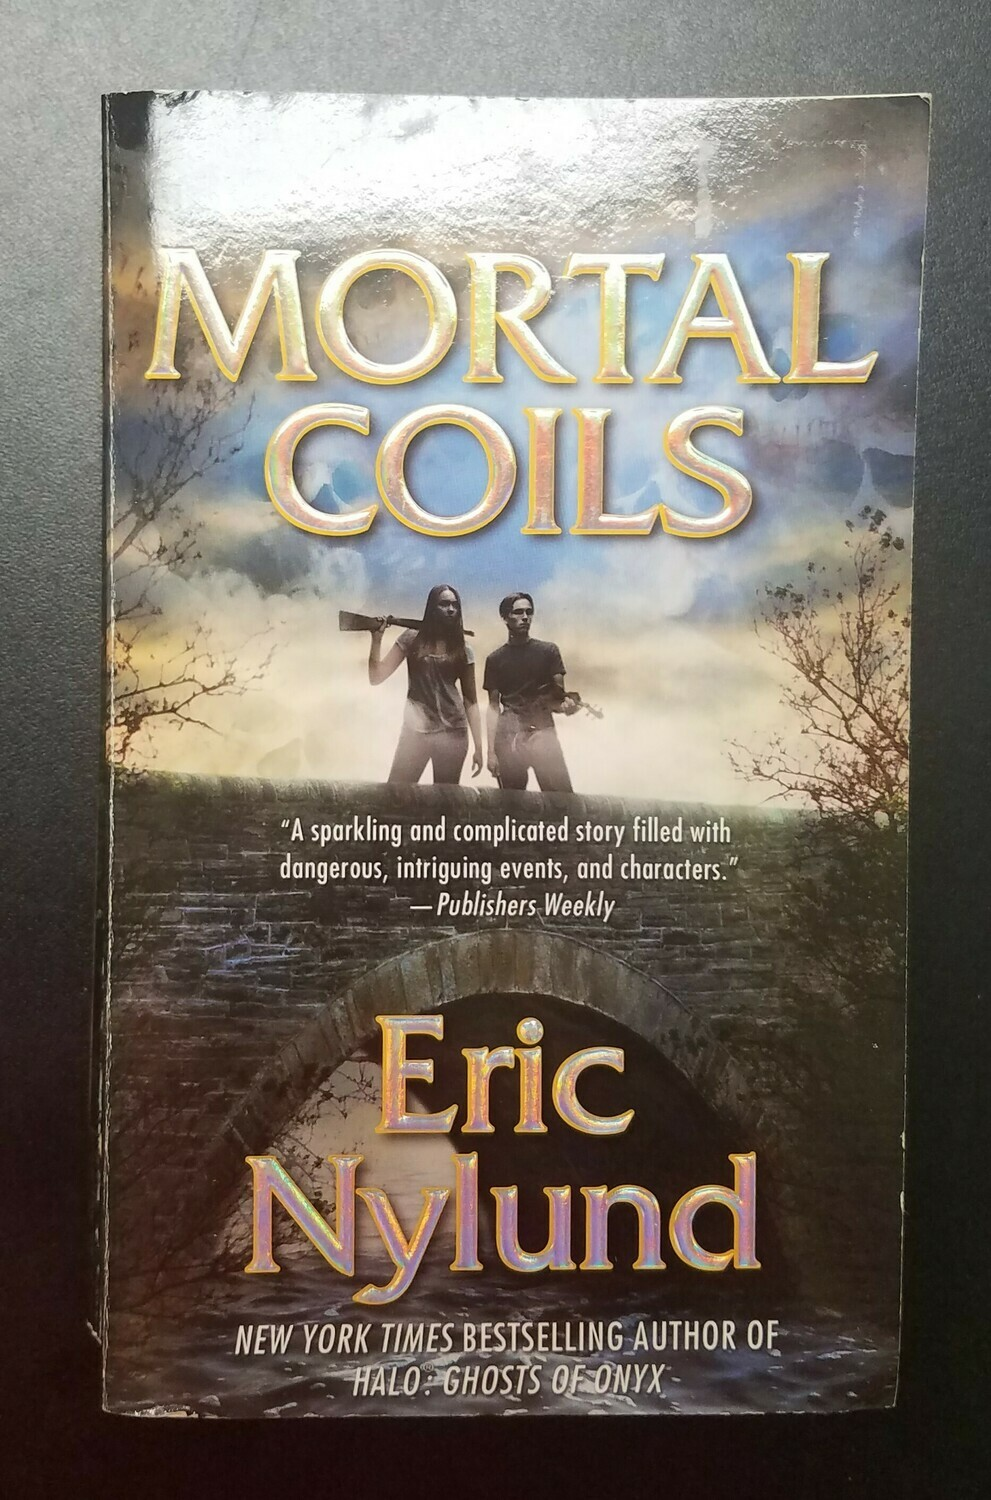 Mortal Coils by Eric Nylund